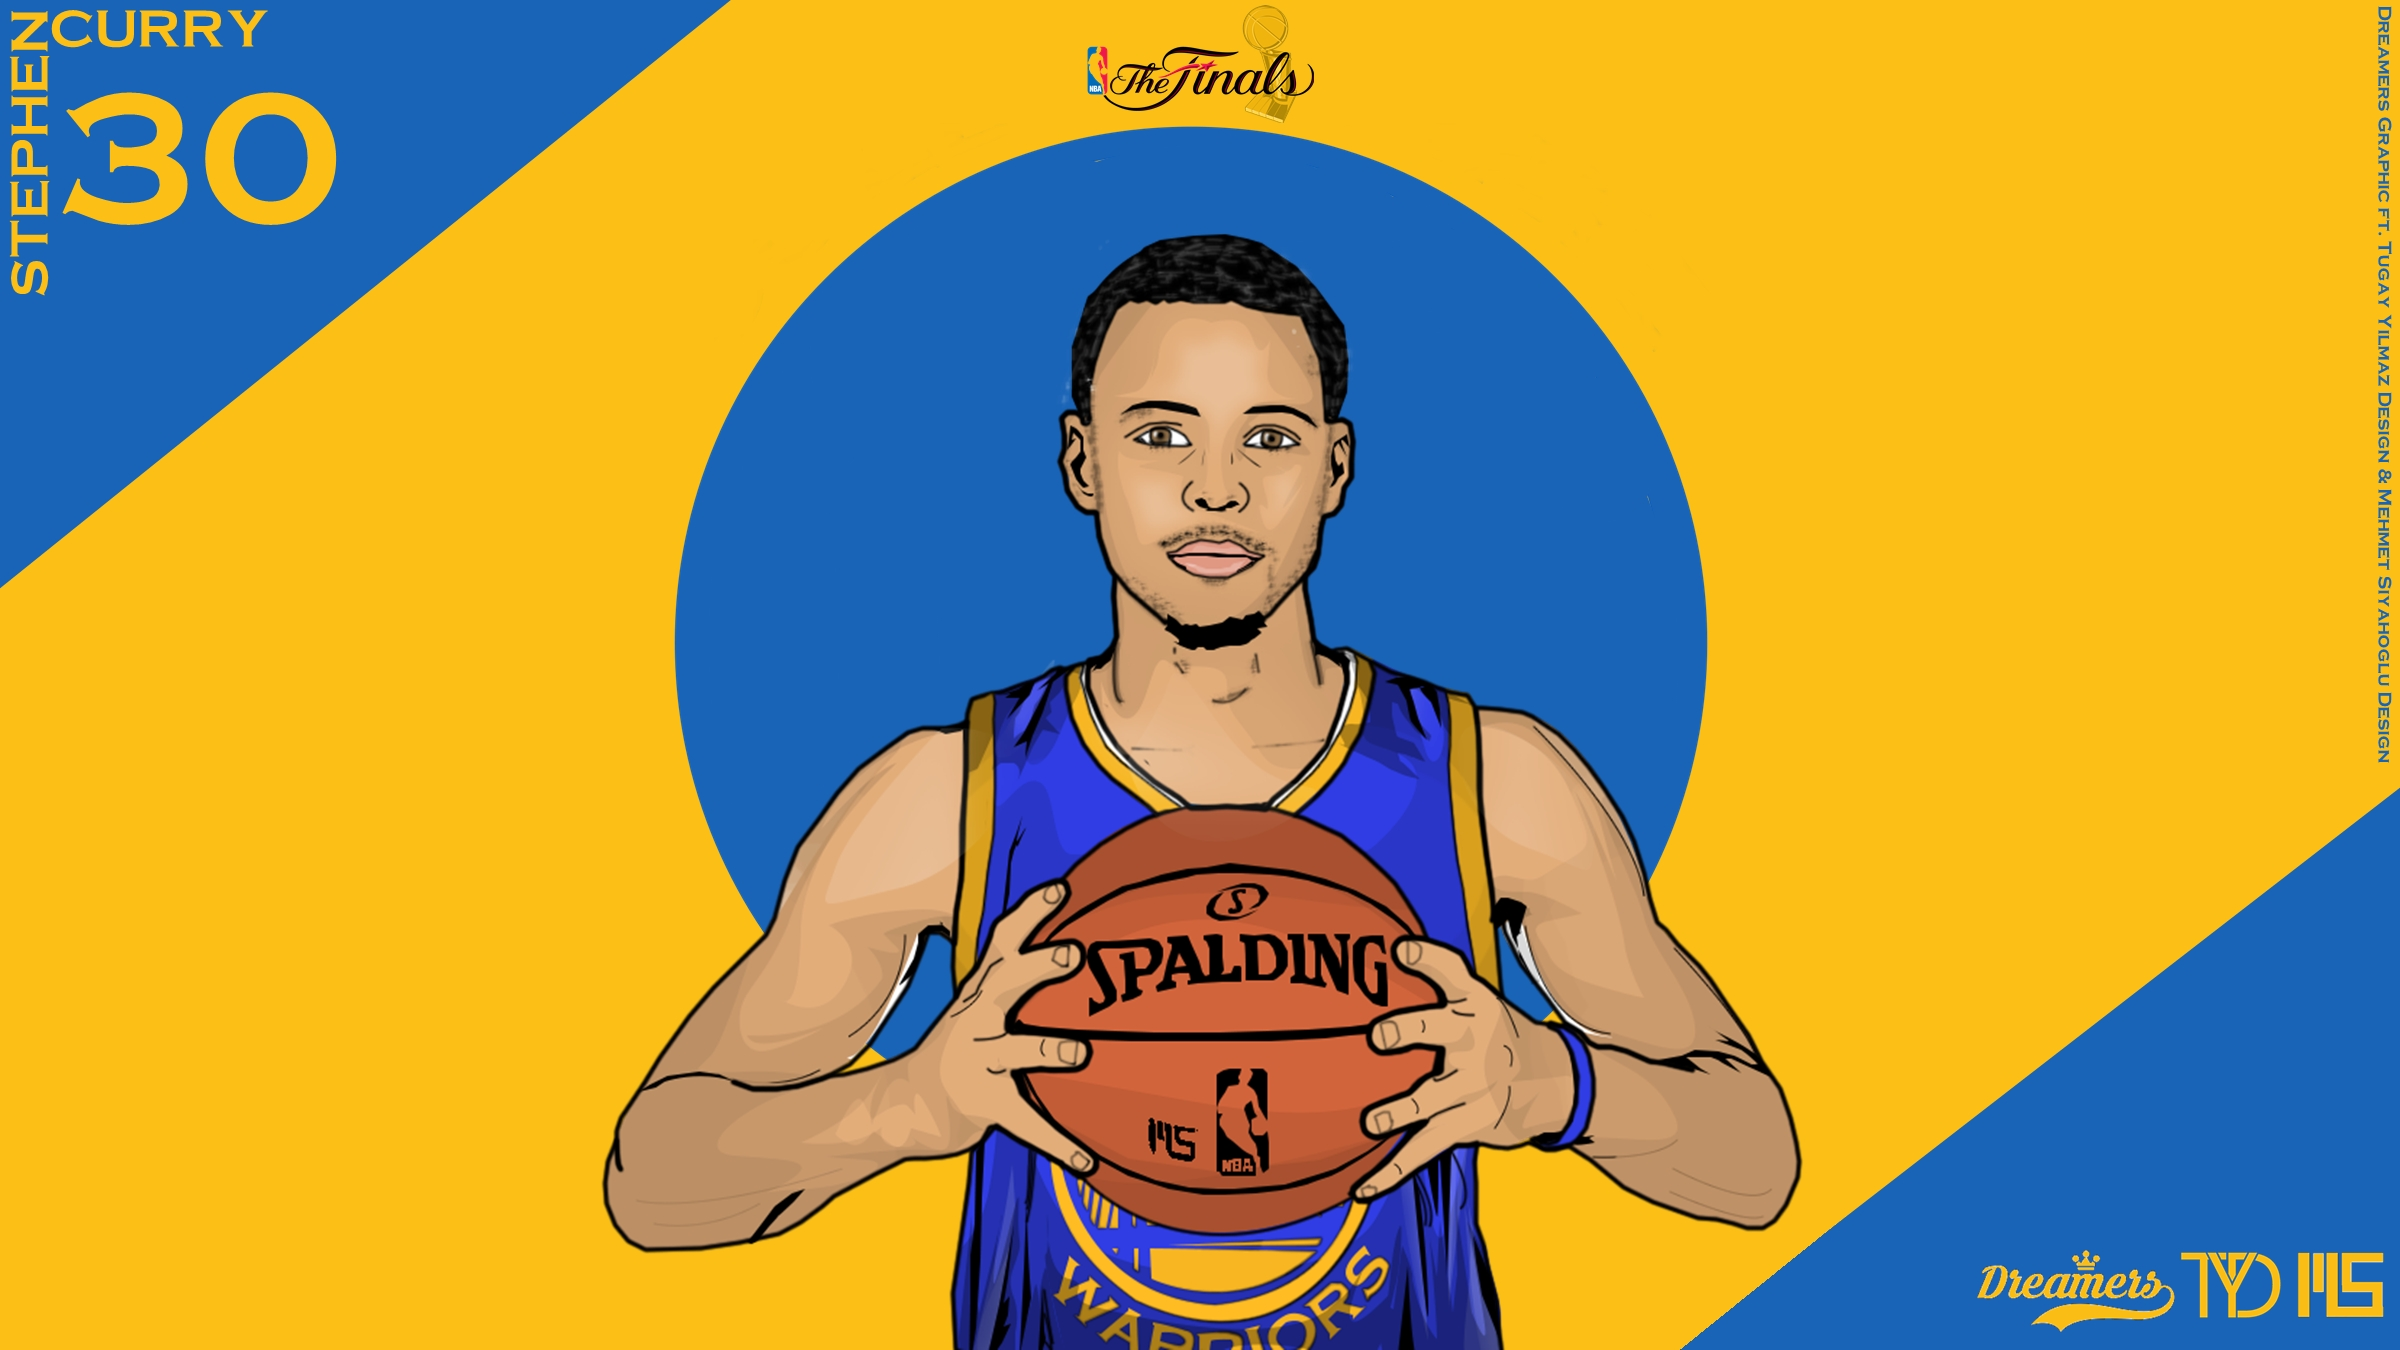 stephen curry android hd images. - media file | pixelstalk